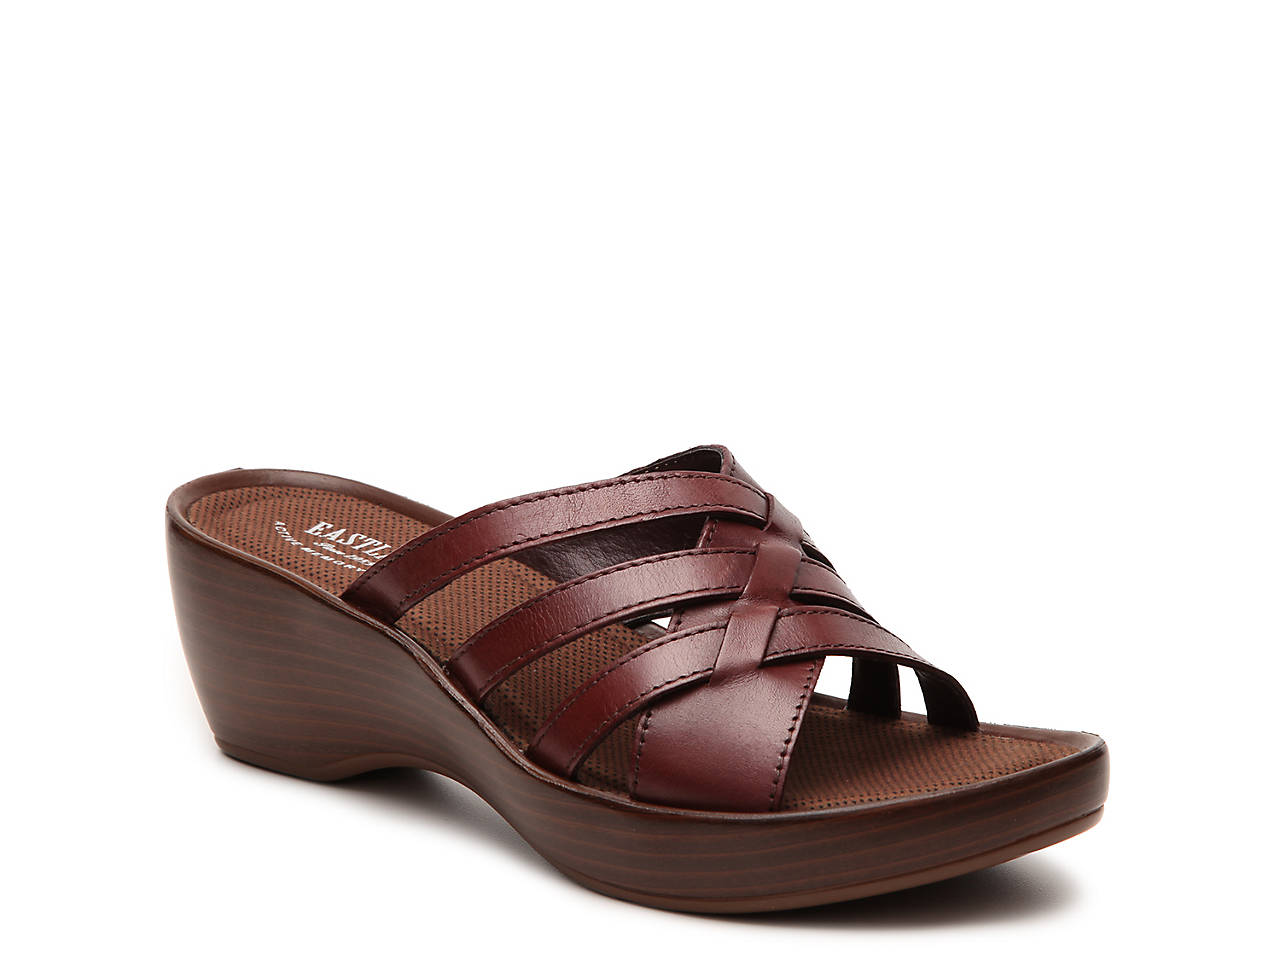 free shipping professional clearance supply Eastland Leather Slide Sandals - Poppy cheap price discount authentic 7HQdye69